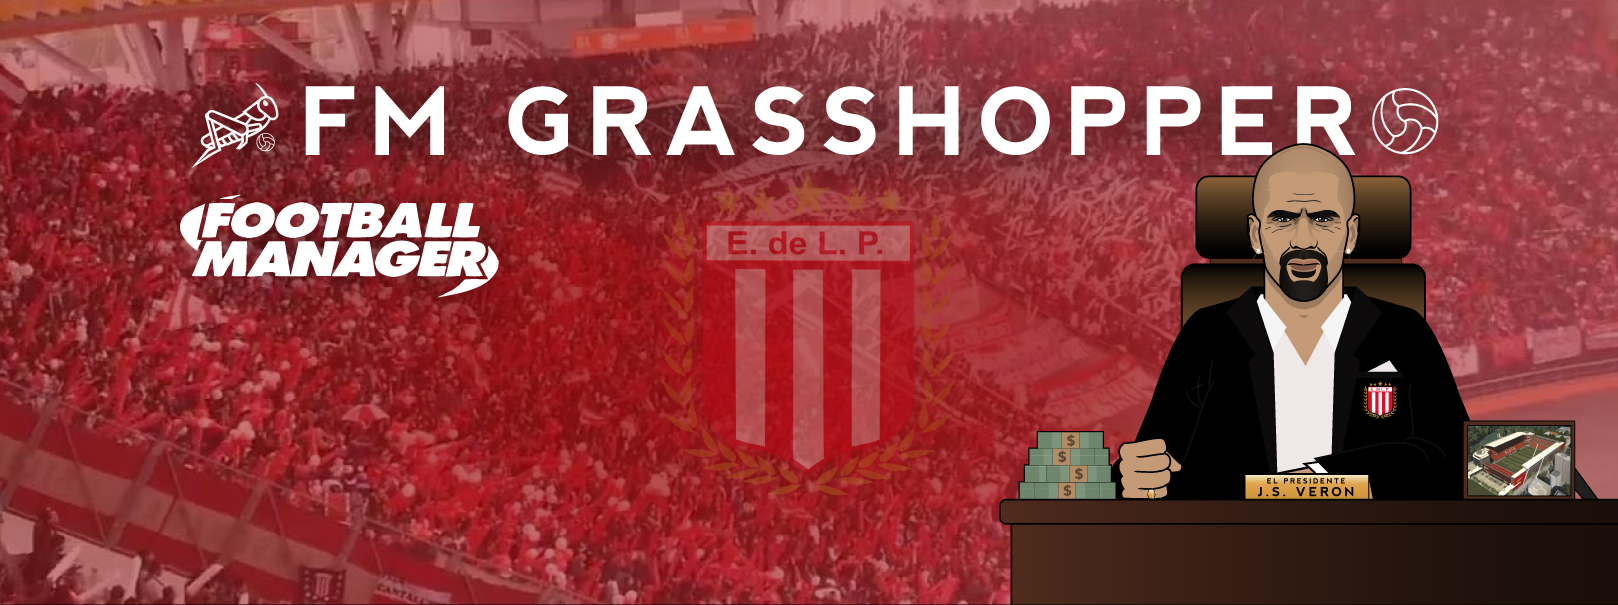 A new El Presidente inspired Twitter header for FM17, courtesy of Barry Downes ( @barryOdownes )